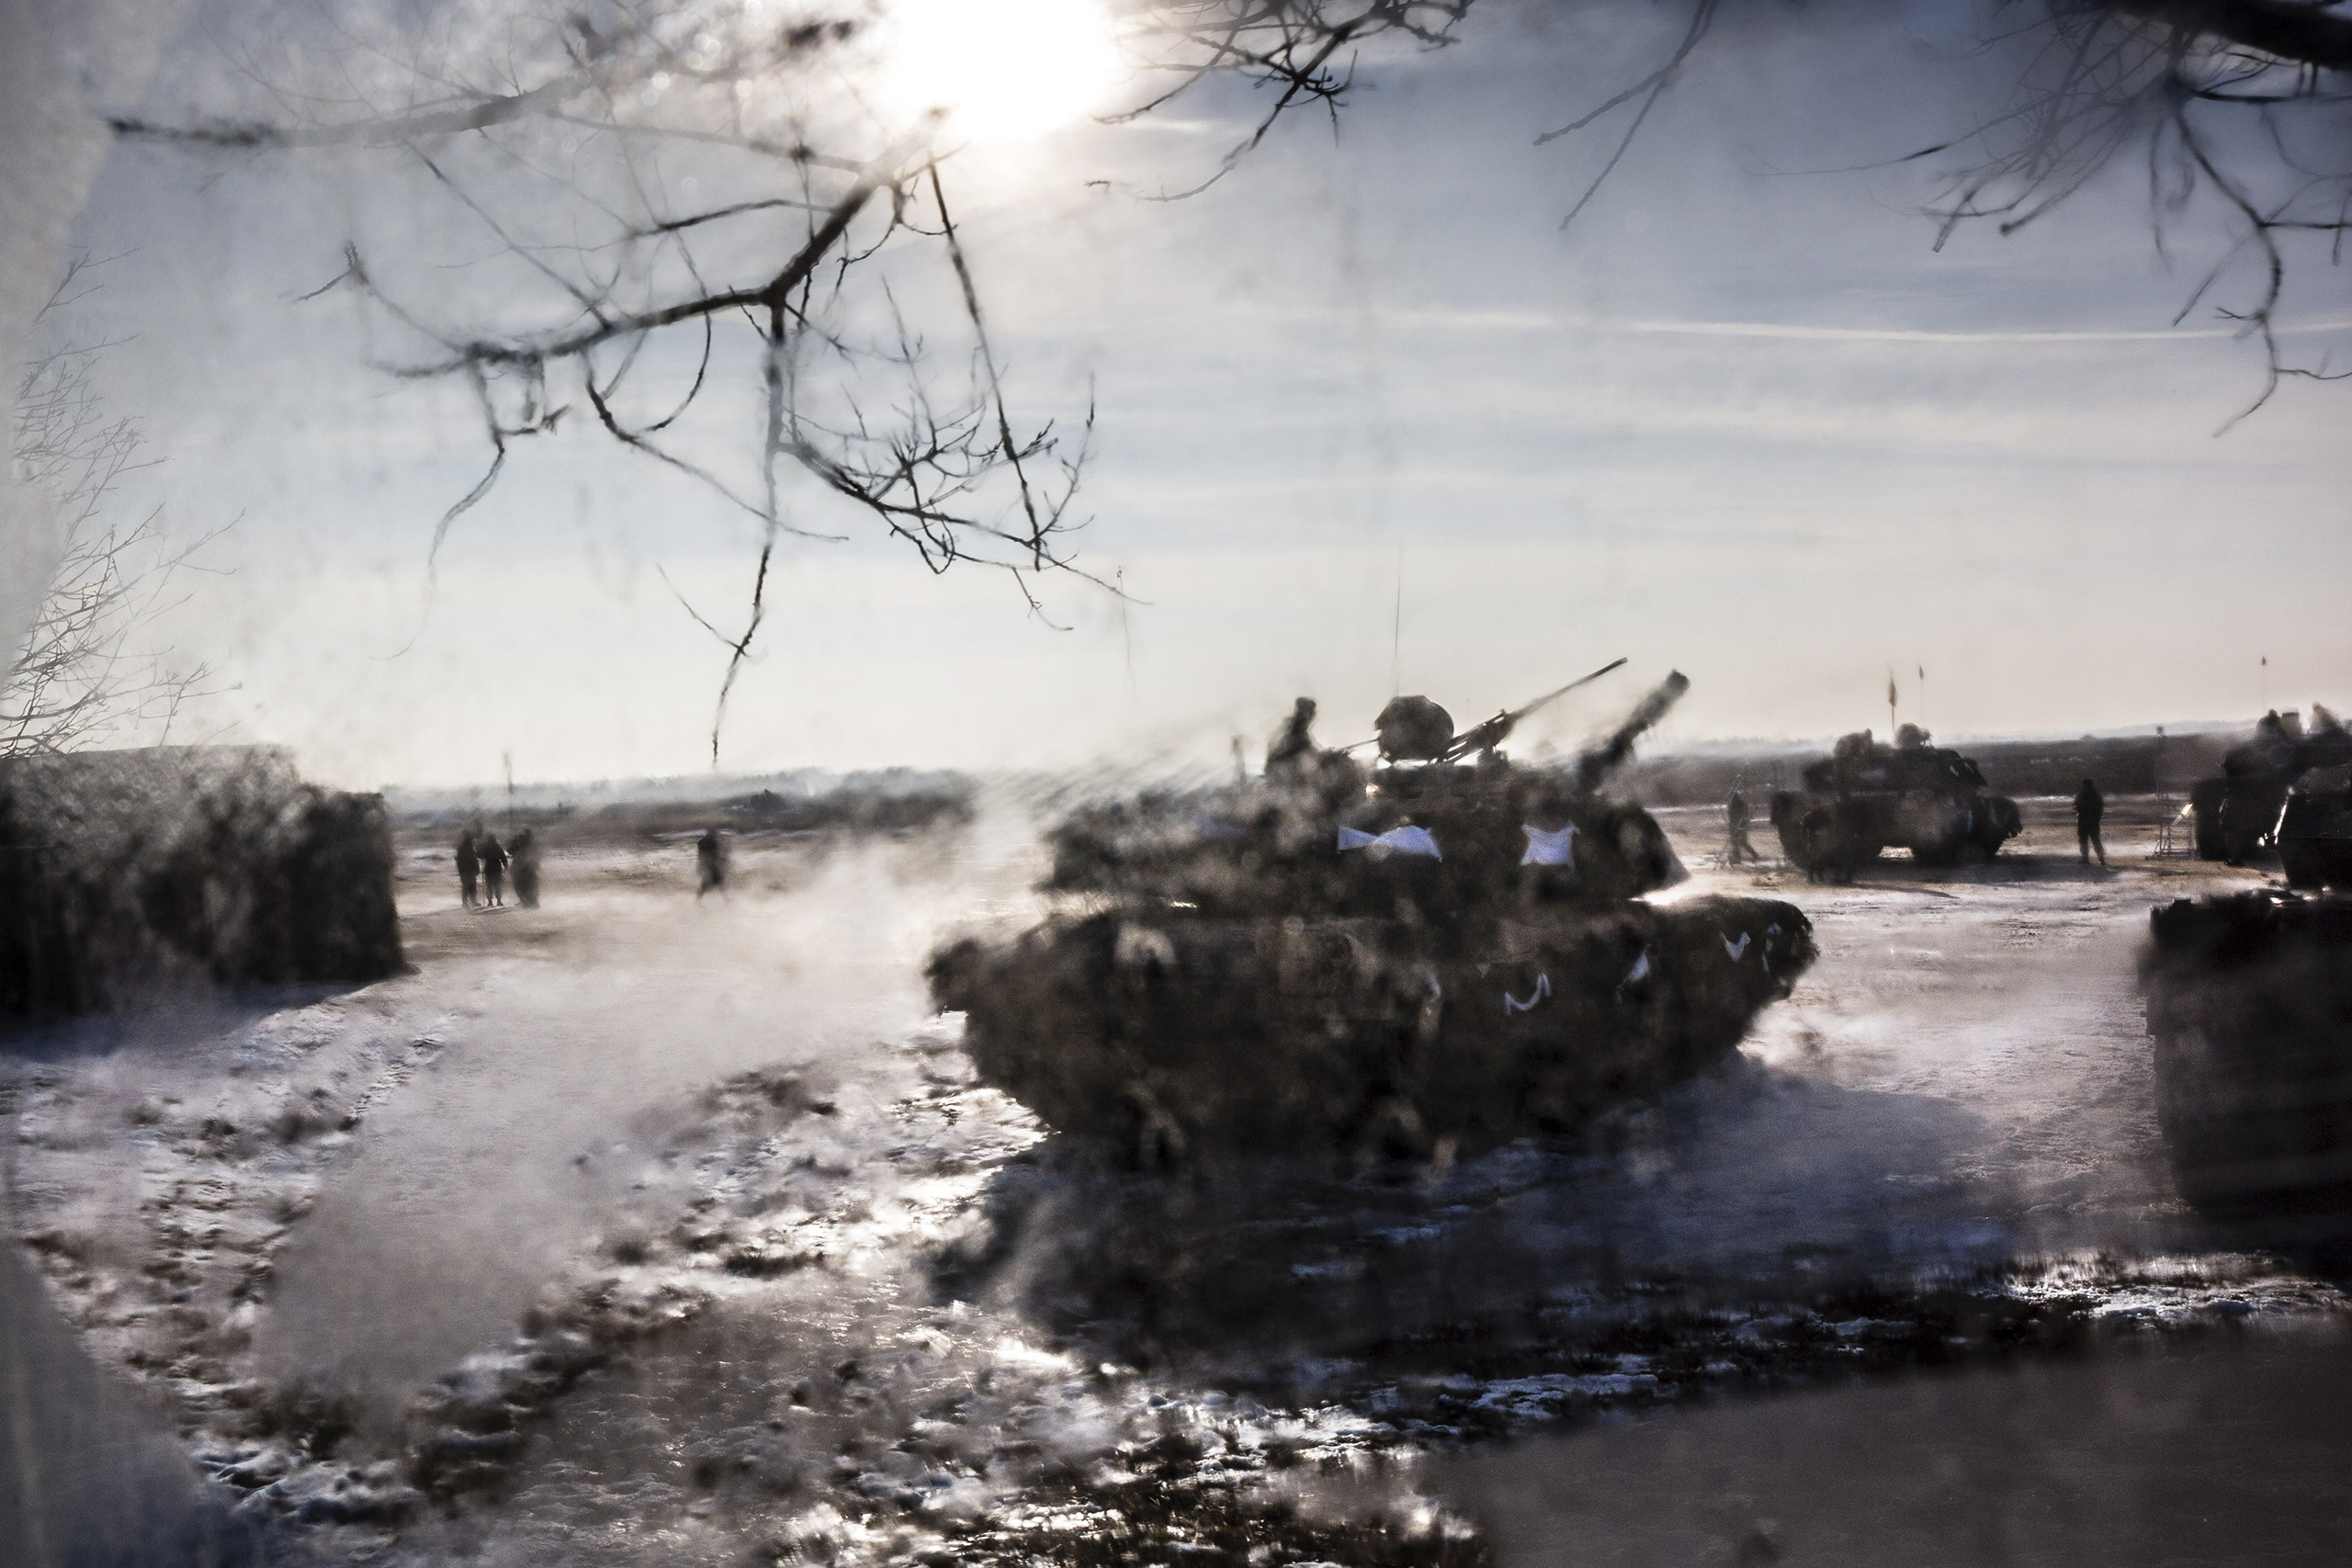 Tanks and troops from the U.S. 3rd Armored Brigade deploy to Poland in January to stand watch against Russia.